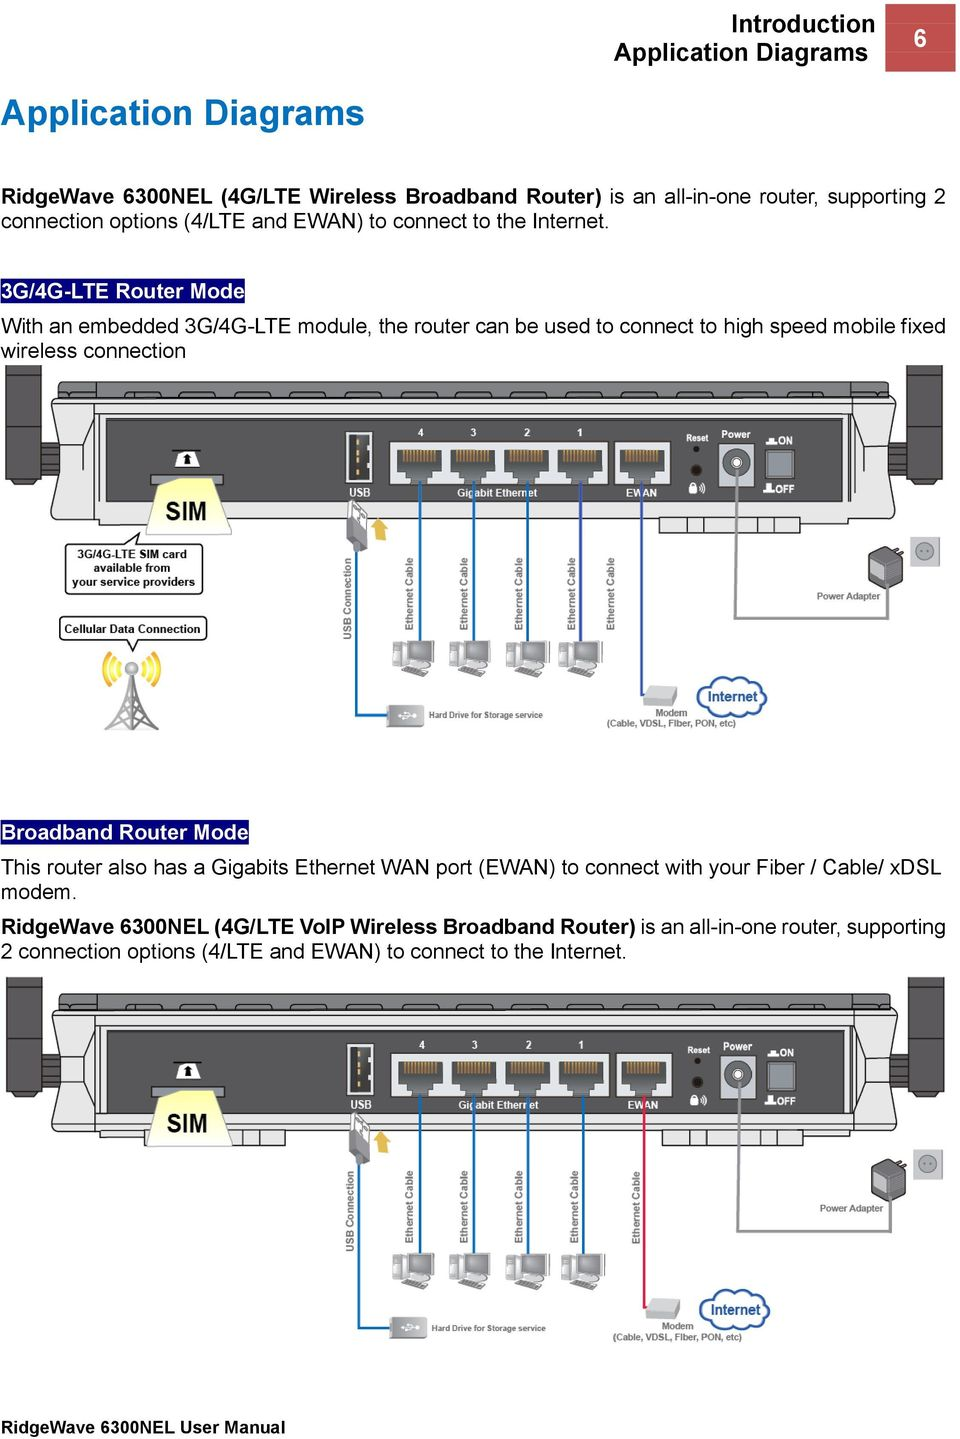 User Manual Ridgewave 6300nel 4g Lte Wireless Broadband Router Pdf 3g Switch Filter Modules Mode With An Embedded Module